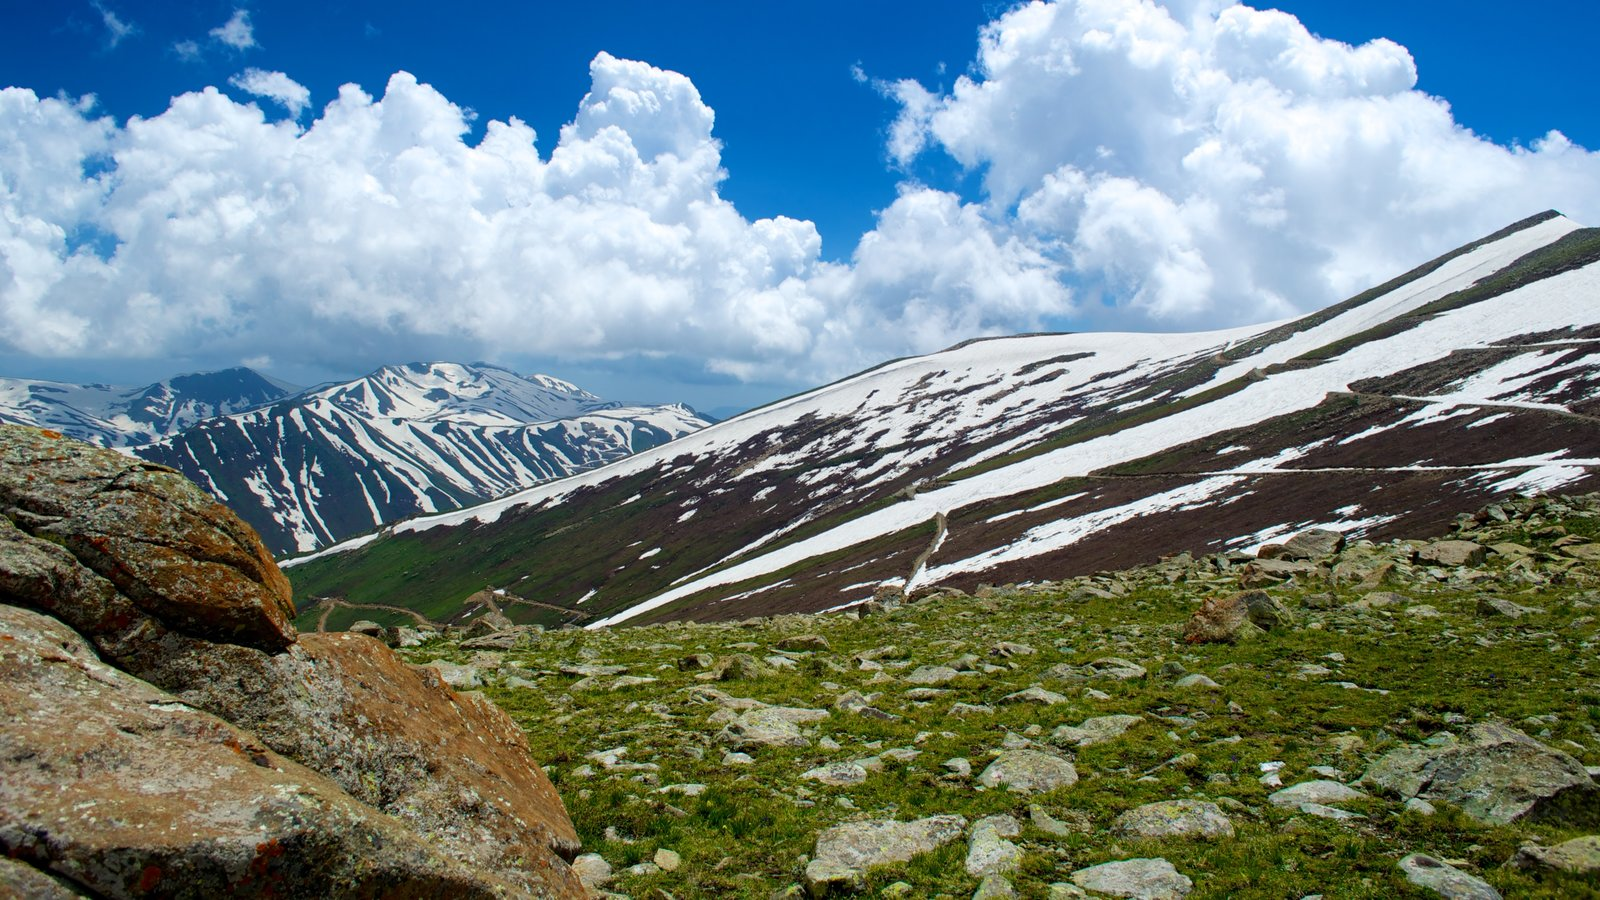 Gulmarg which includes mountains, snow and landscape views